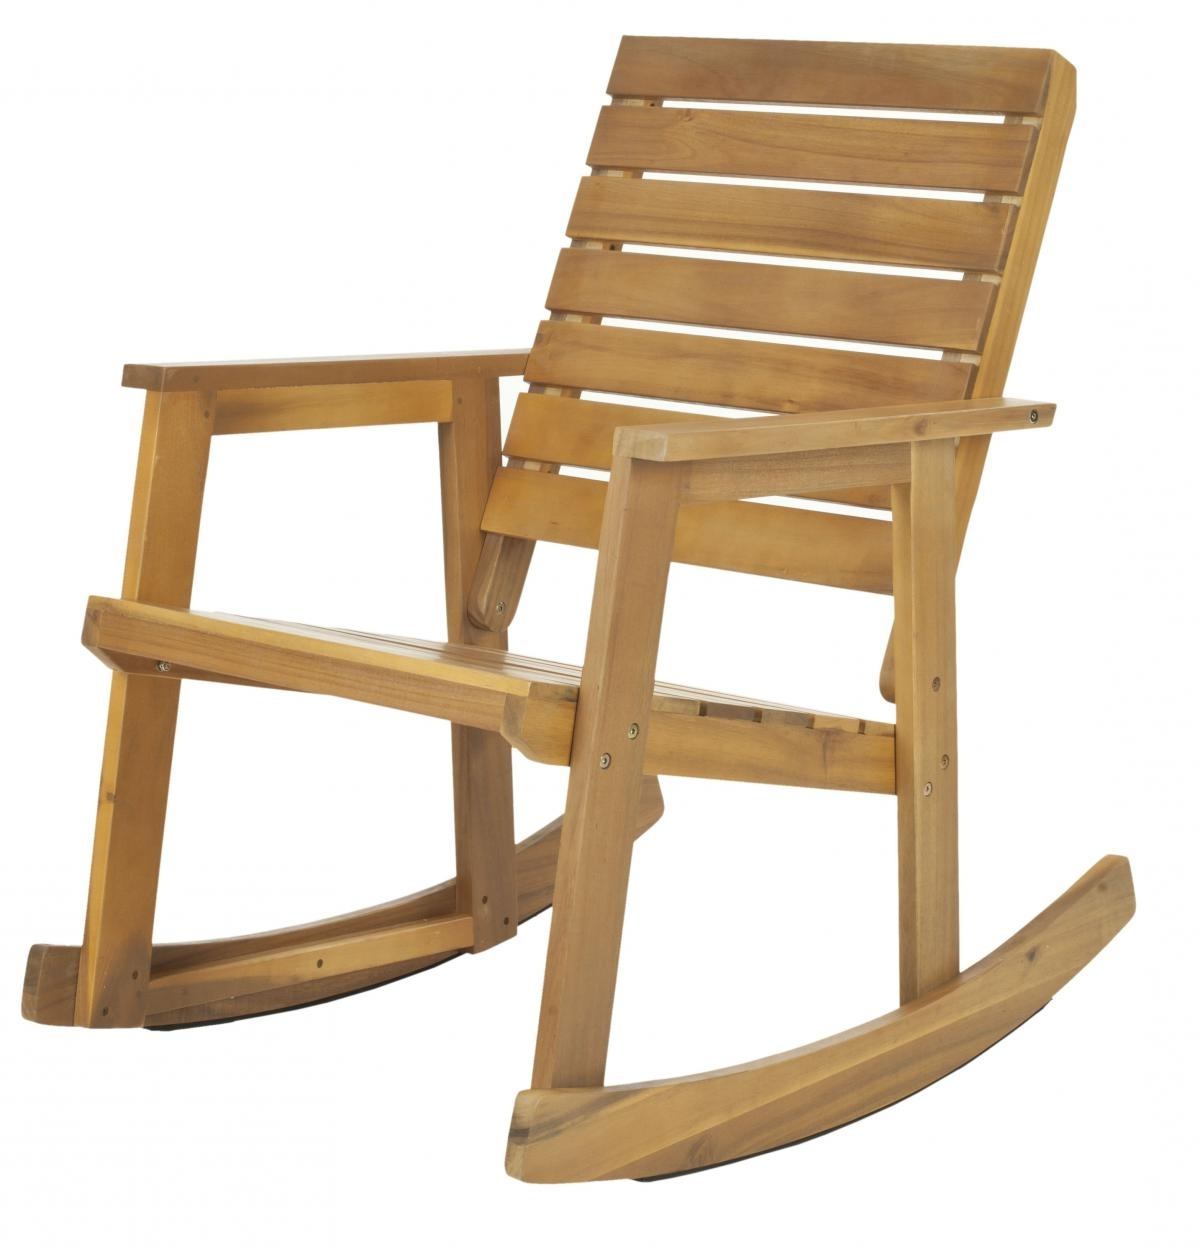 Popular Rocking Chairs At Sam's Club Within Fox6702b Outdoor Rocking Chairs, Rocking Chairs – Furnituresafavieh (View 3 of 20)